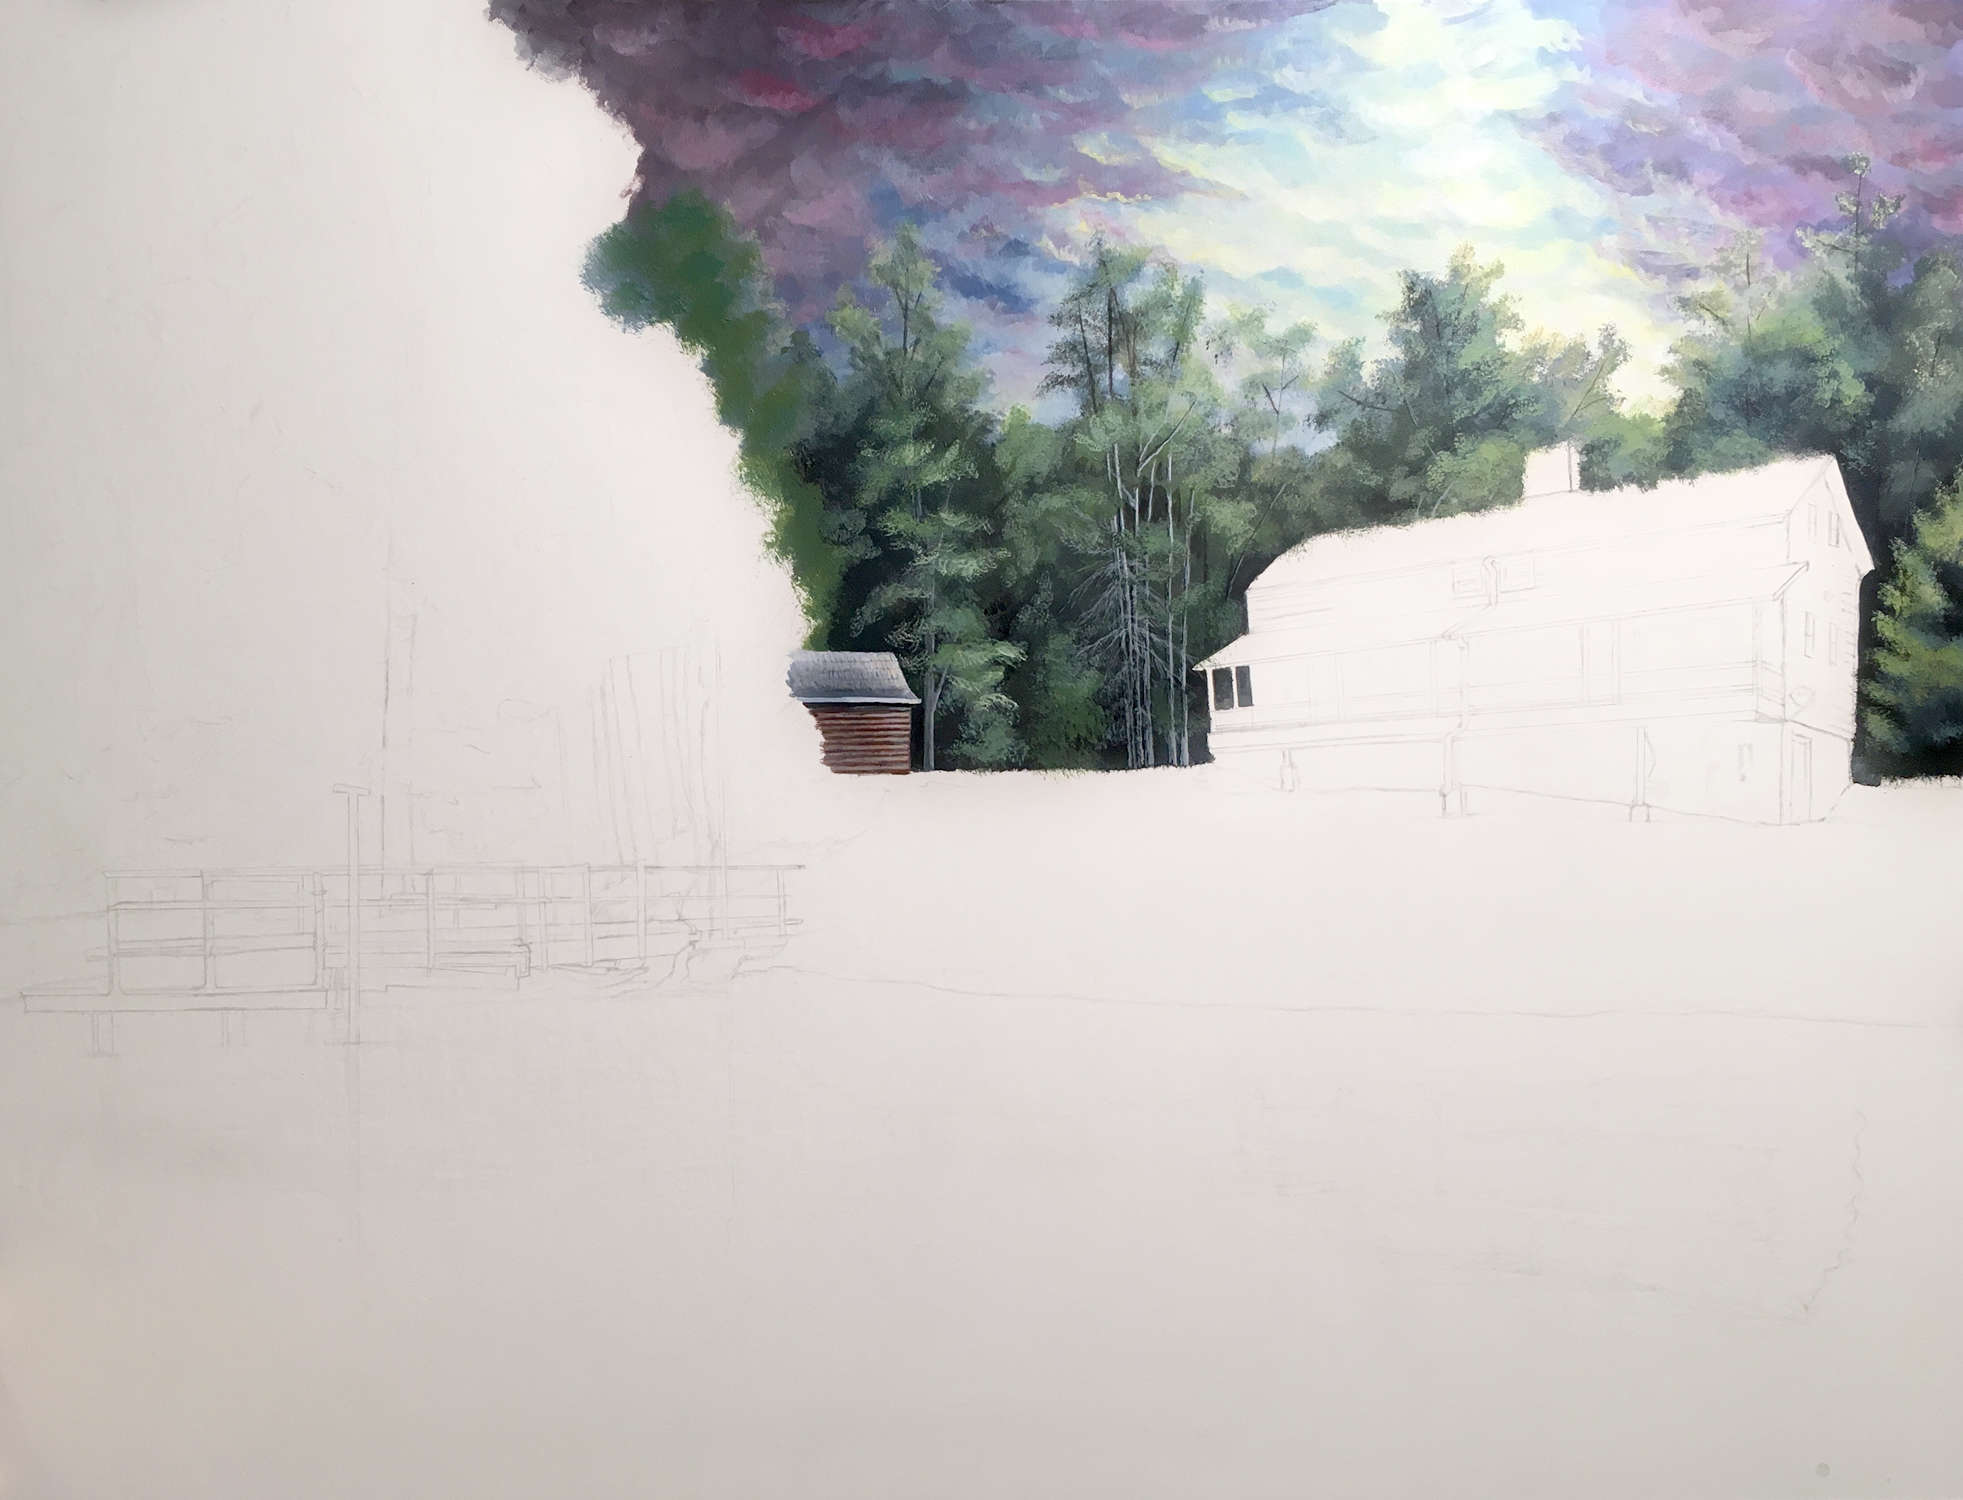 Cabin Painting in Progress - Rebecca Magar